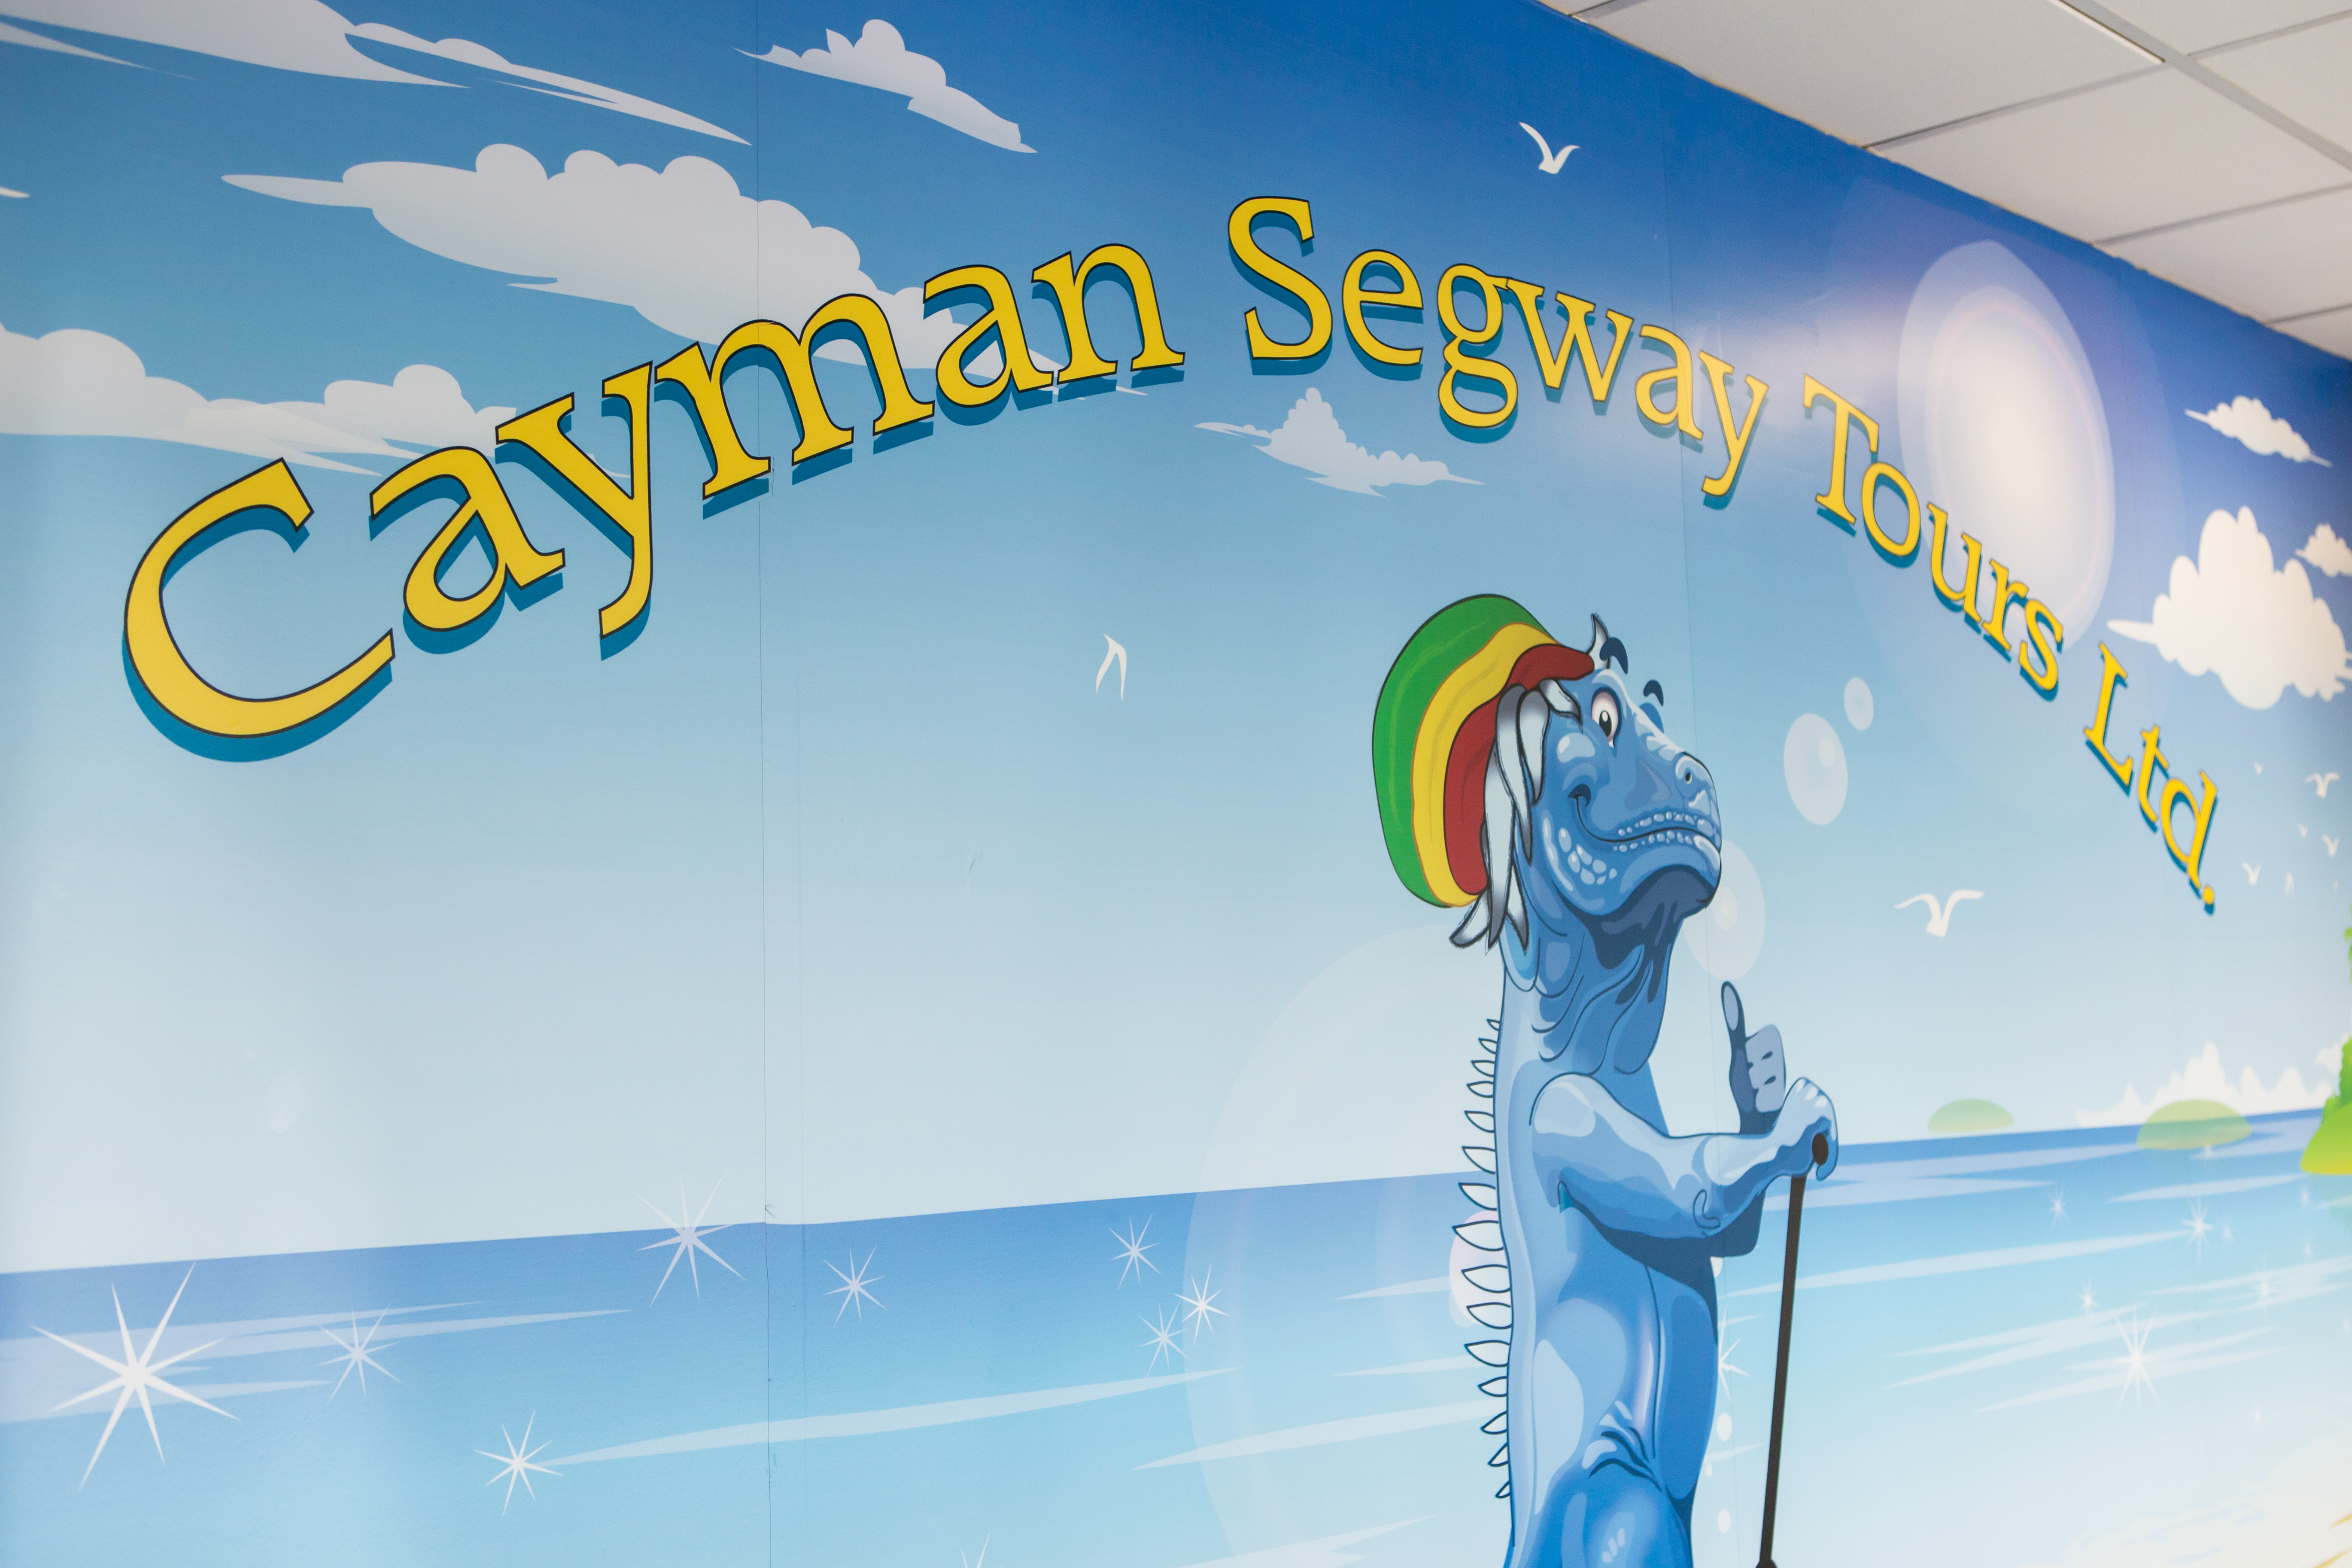 Cayman Segway Graphic Wall